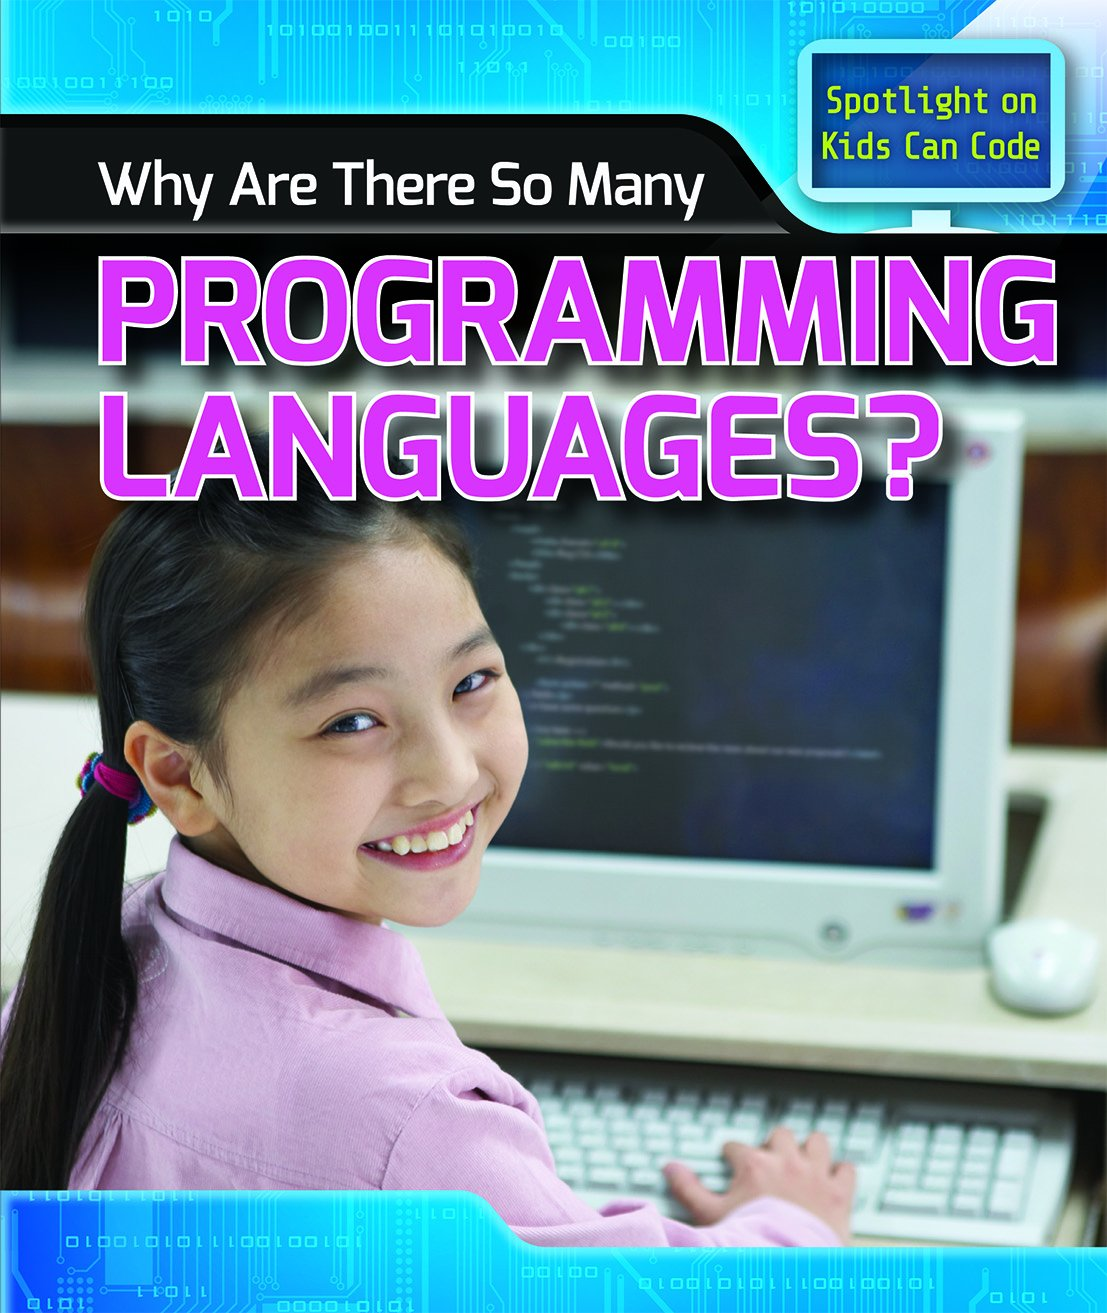 Why Are There So Many Programming Languages? (Spotlight on Kids Can Code)